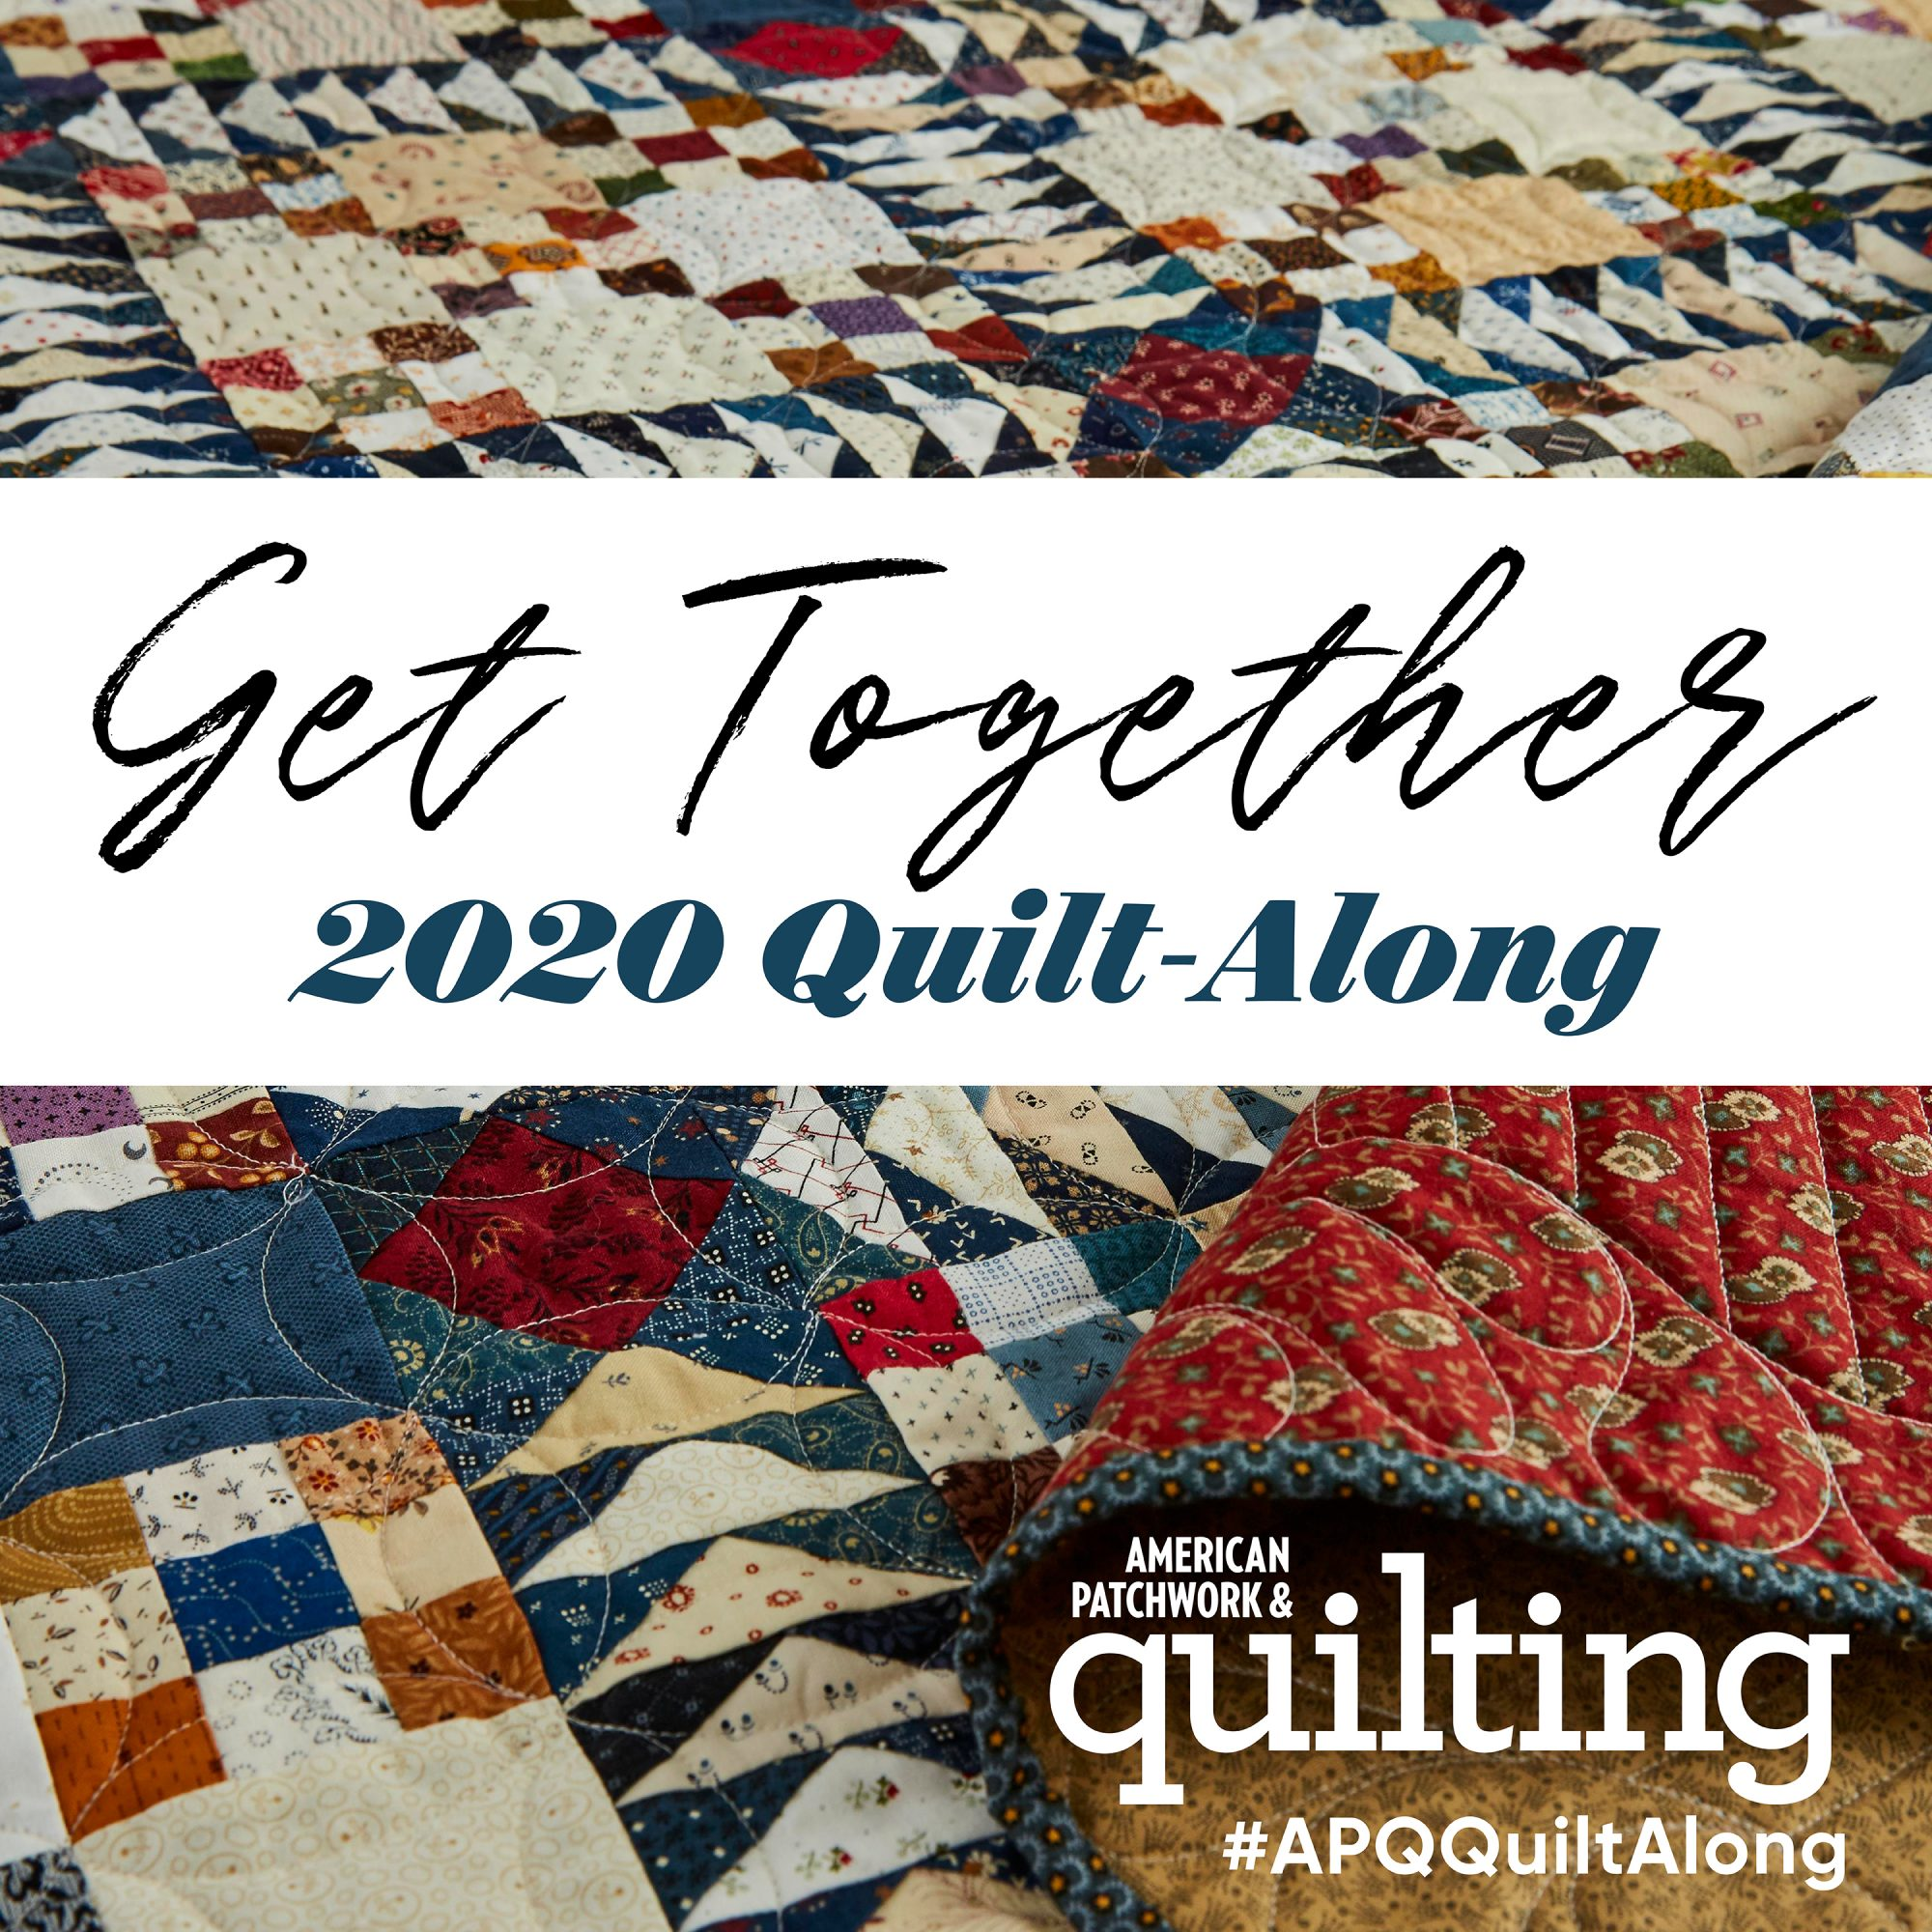 quilt along image